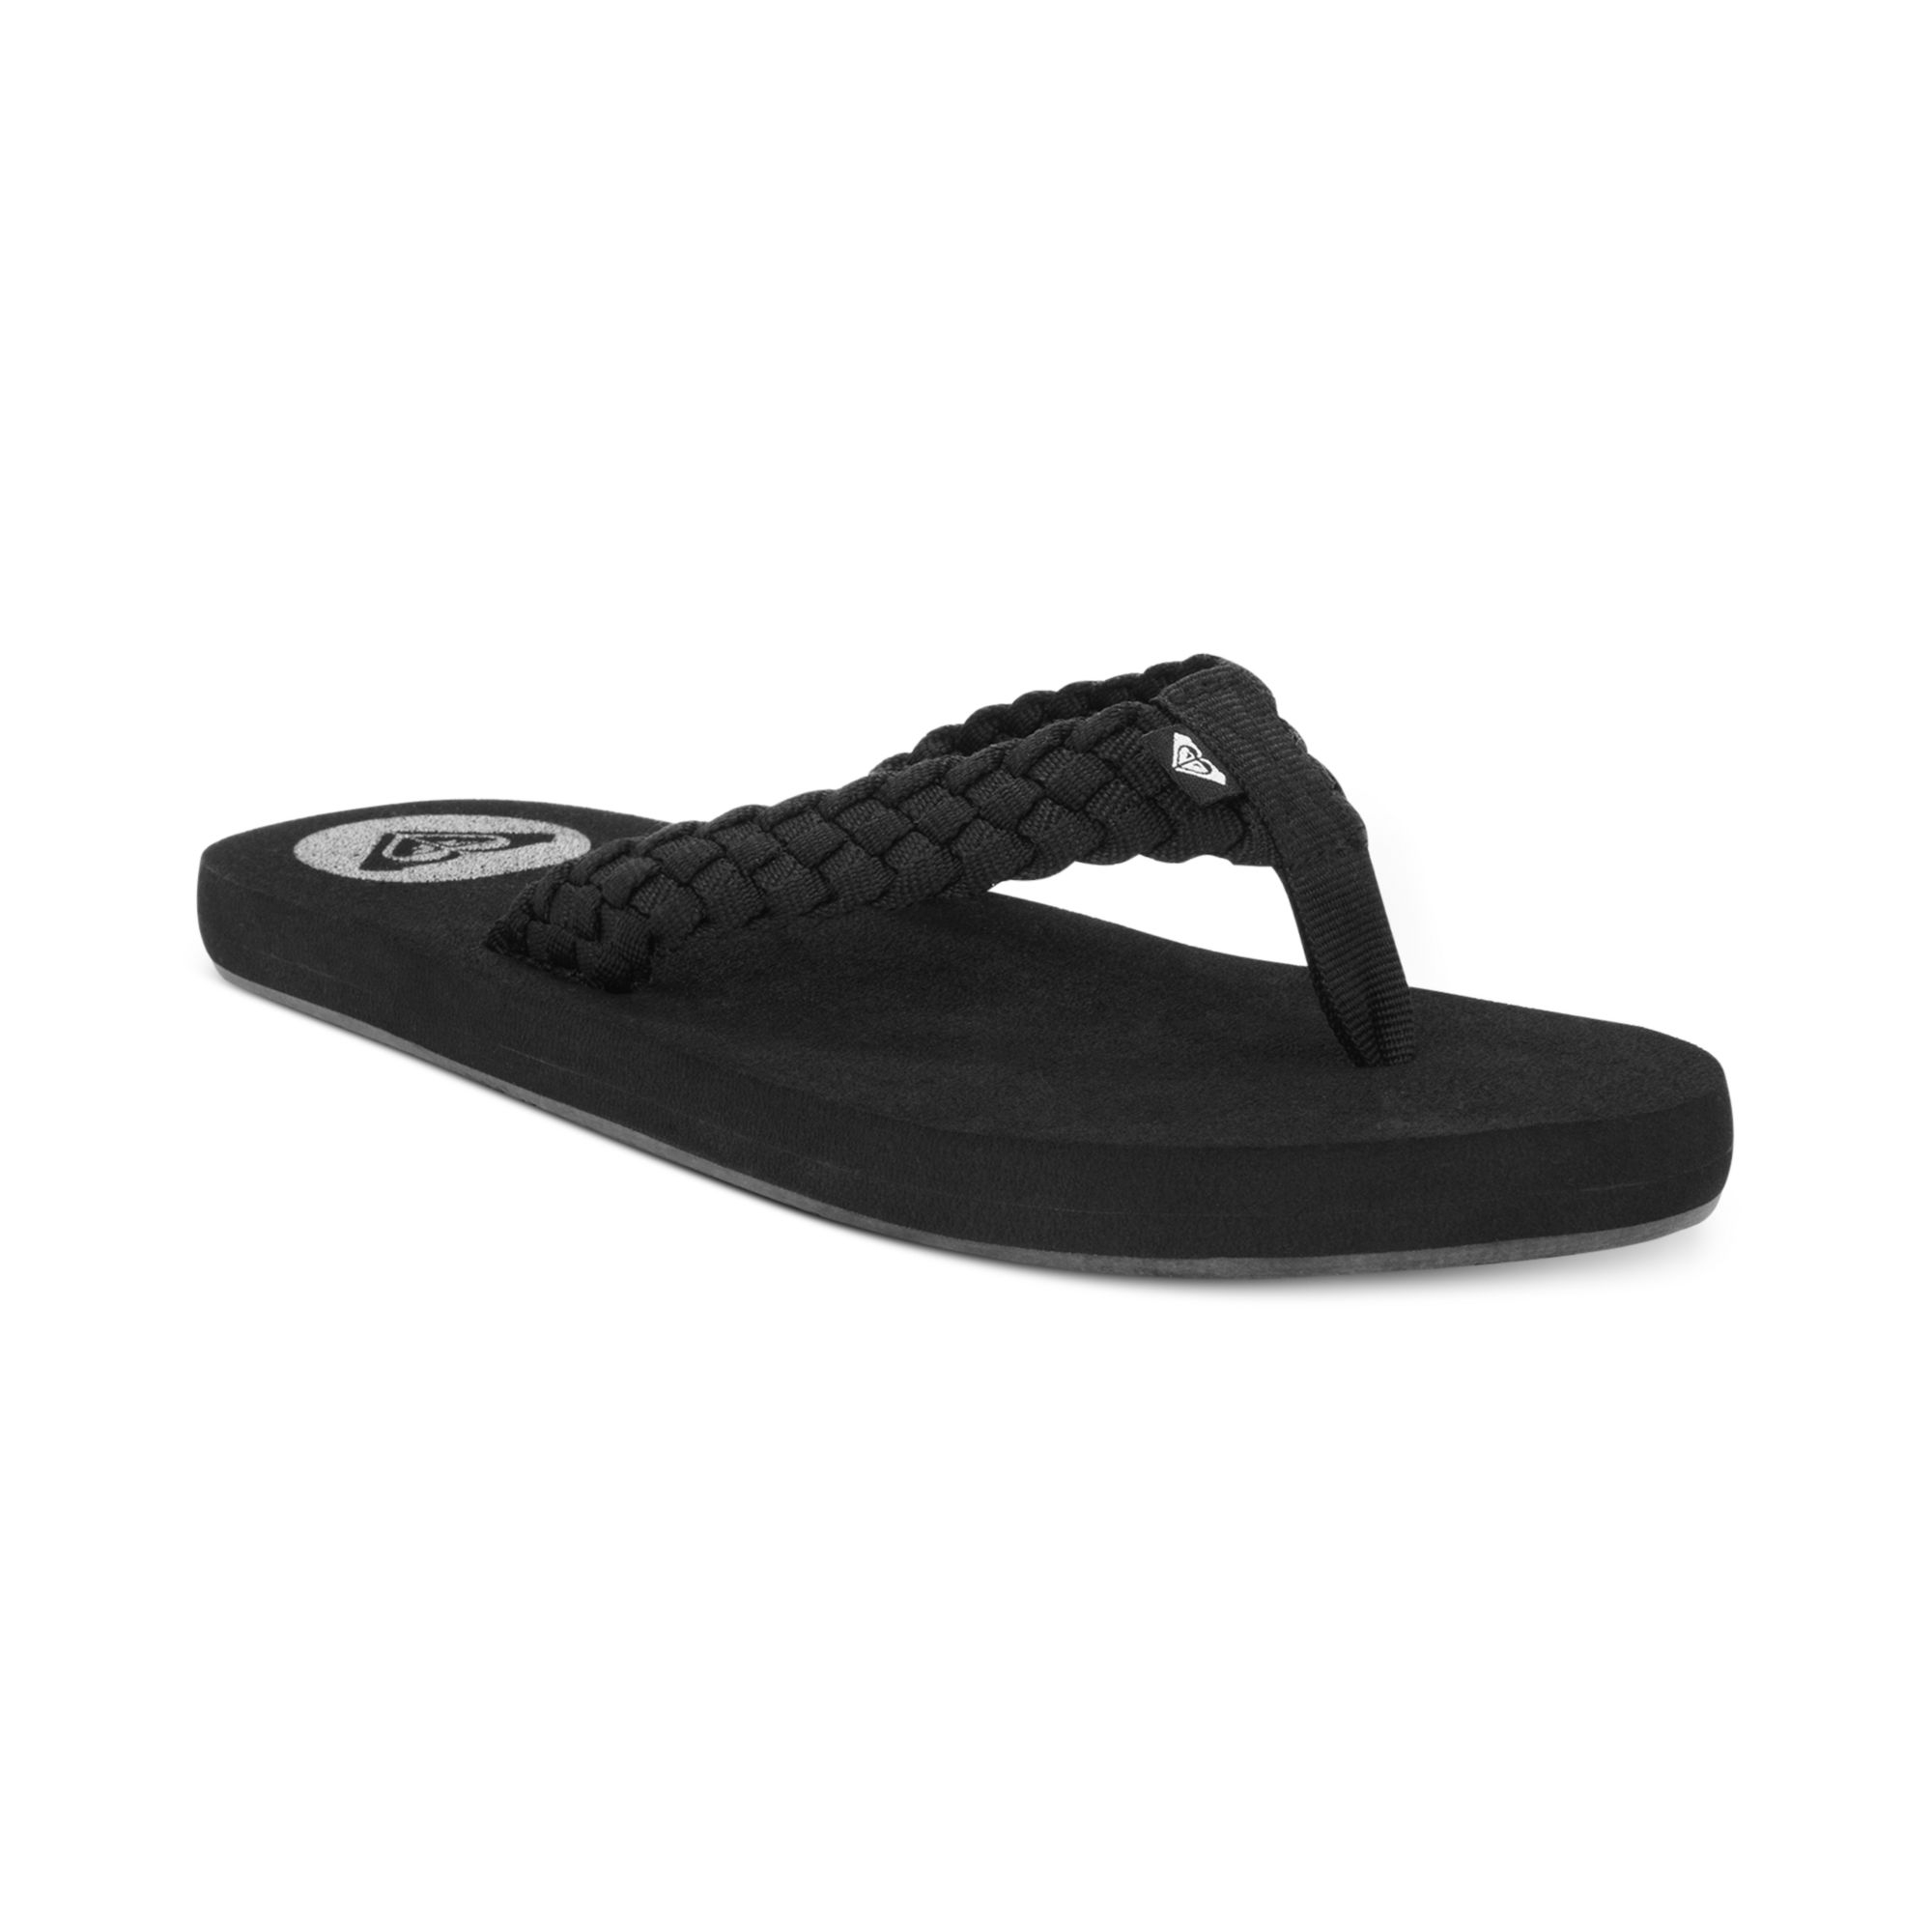 Roxy Rip Current Thong Sandals In Blackblack Black - Lyst-7207